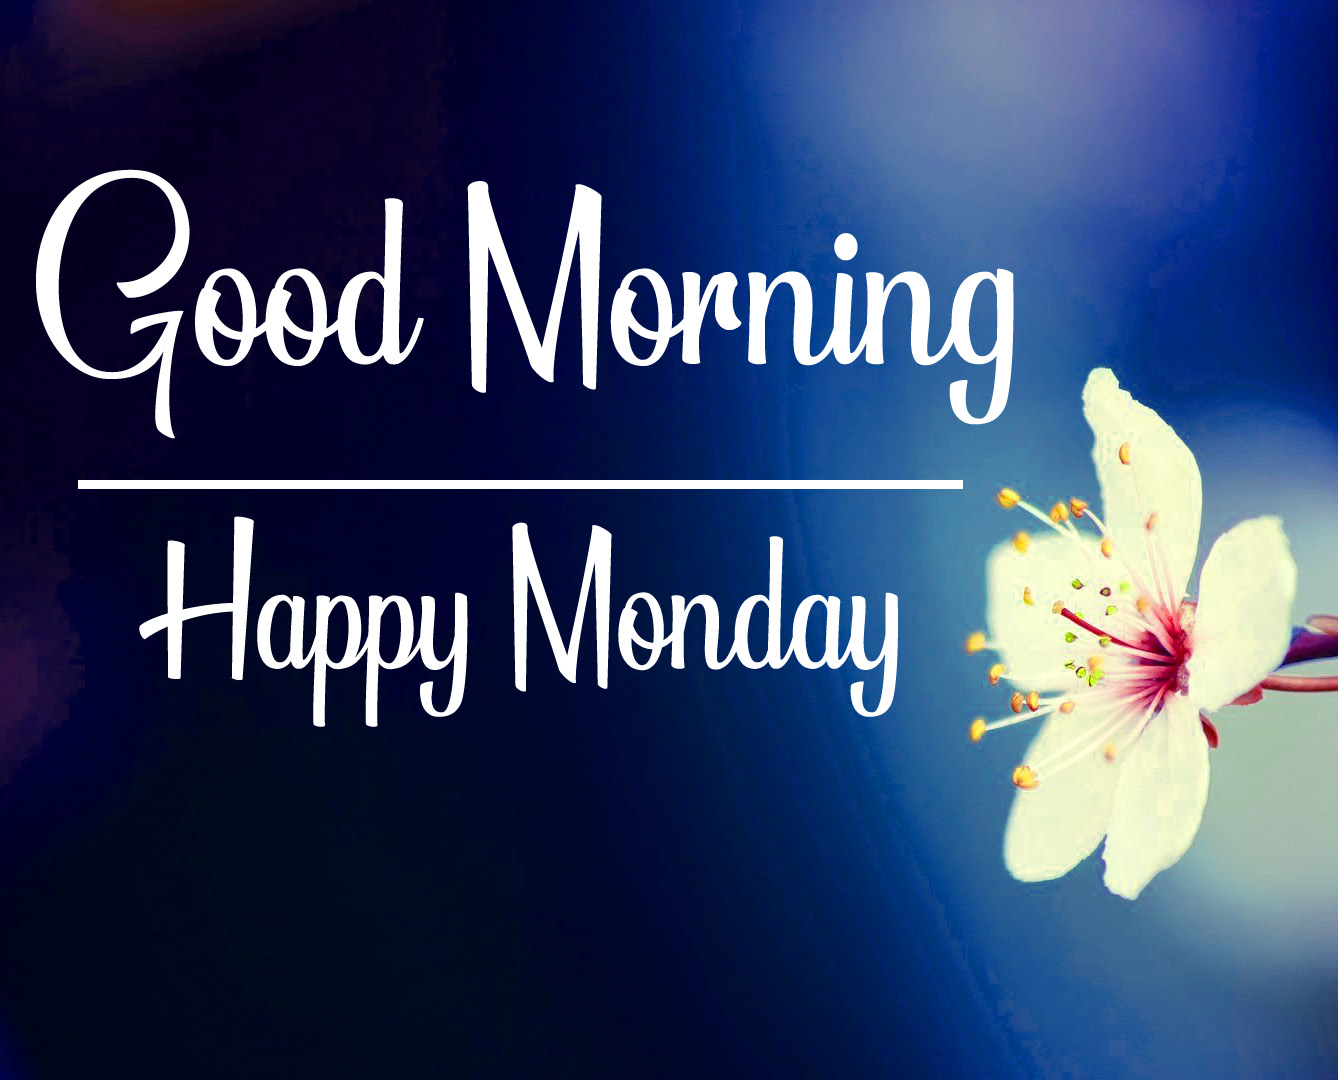 good morning images monday